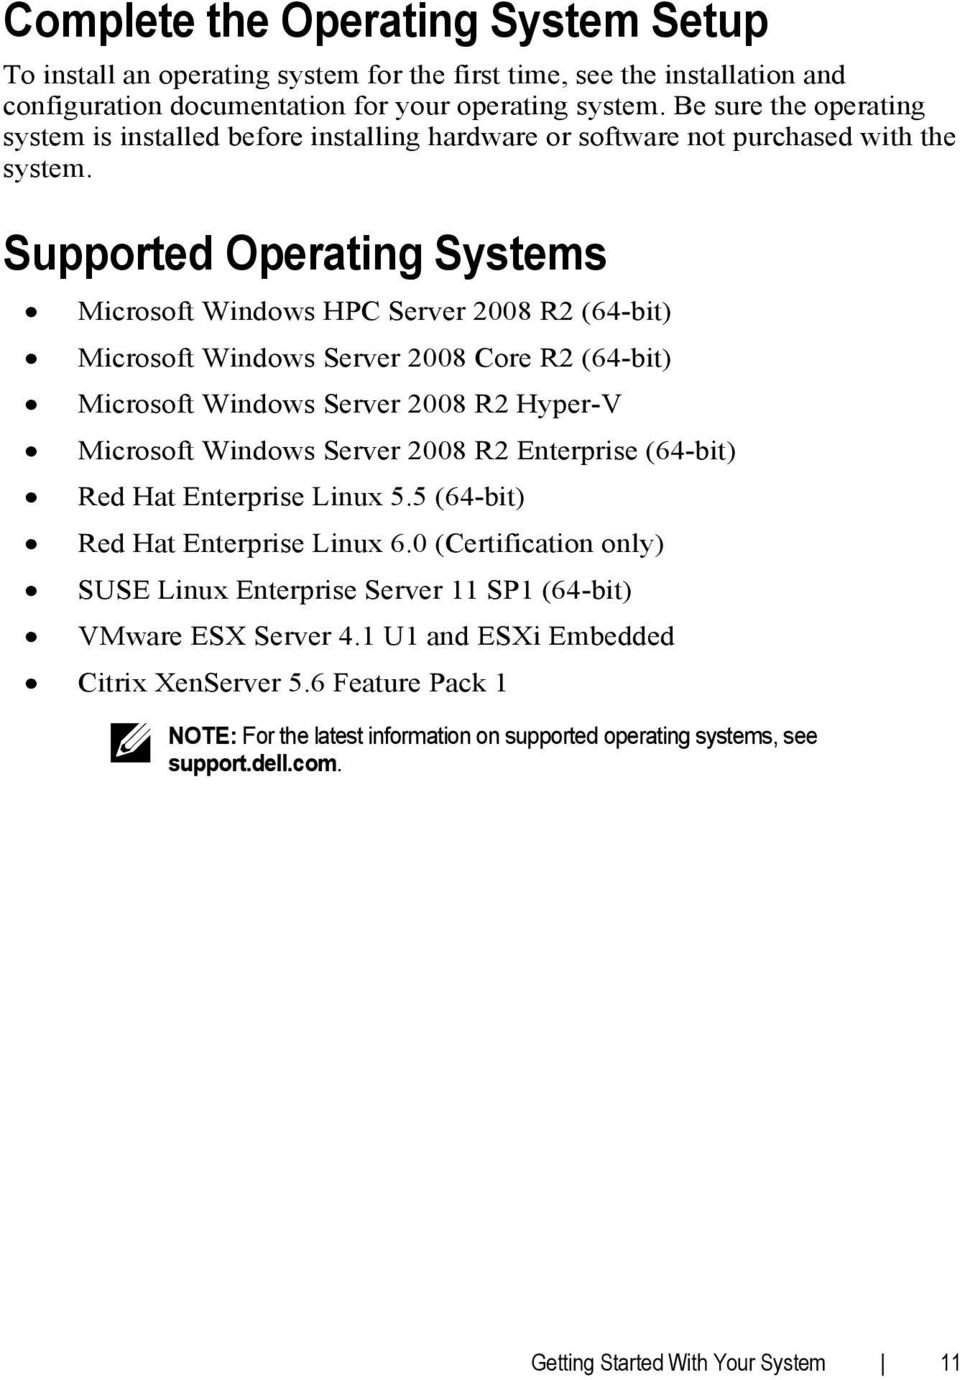 Supported Operating Systems Microsoft Windows HPC Server 2008 R2 (64-bit) Microsoft Windows Server 2008 Core R2 (64-bit) Microsoft Windows Server 2008 R2 Hyper-V Microsoft Windows Server 2008 R2